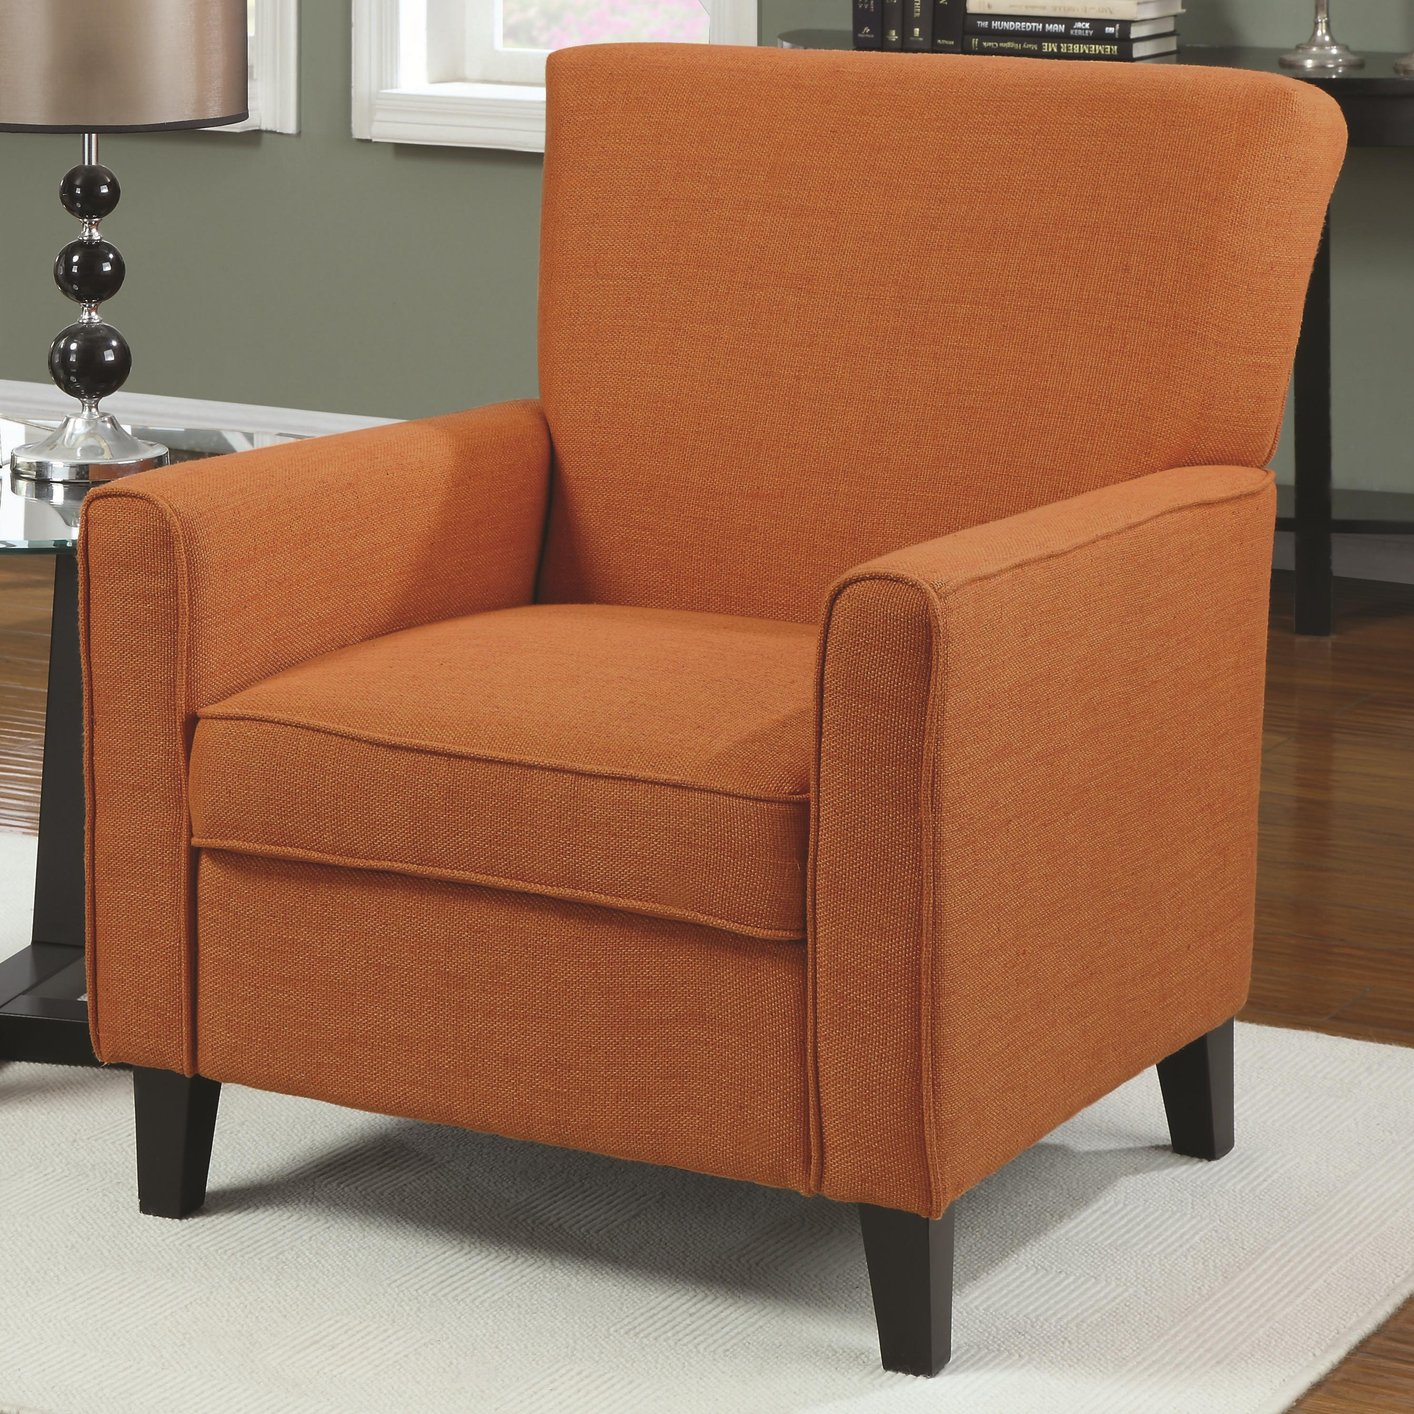 Coaster 902094 Orange Fabric Accent Chair Steal A Sofa  : orange fabric accent chair 3 from www.stealasofa.com size 1414 x 1414 jpeg 463kB